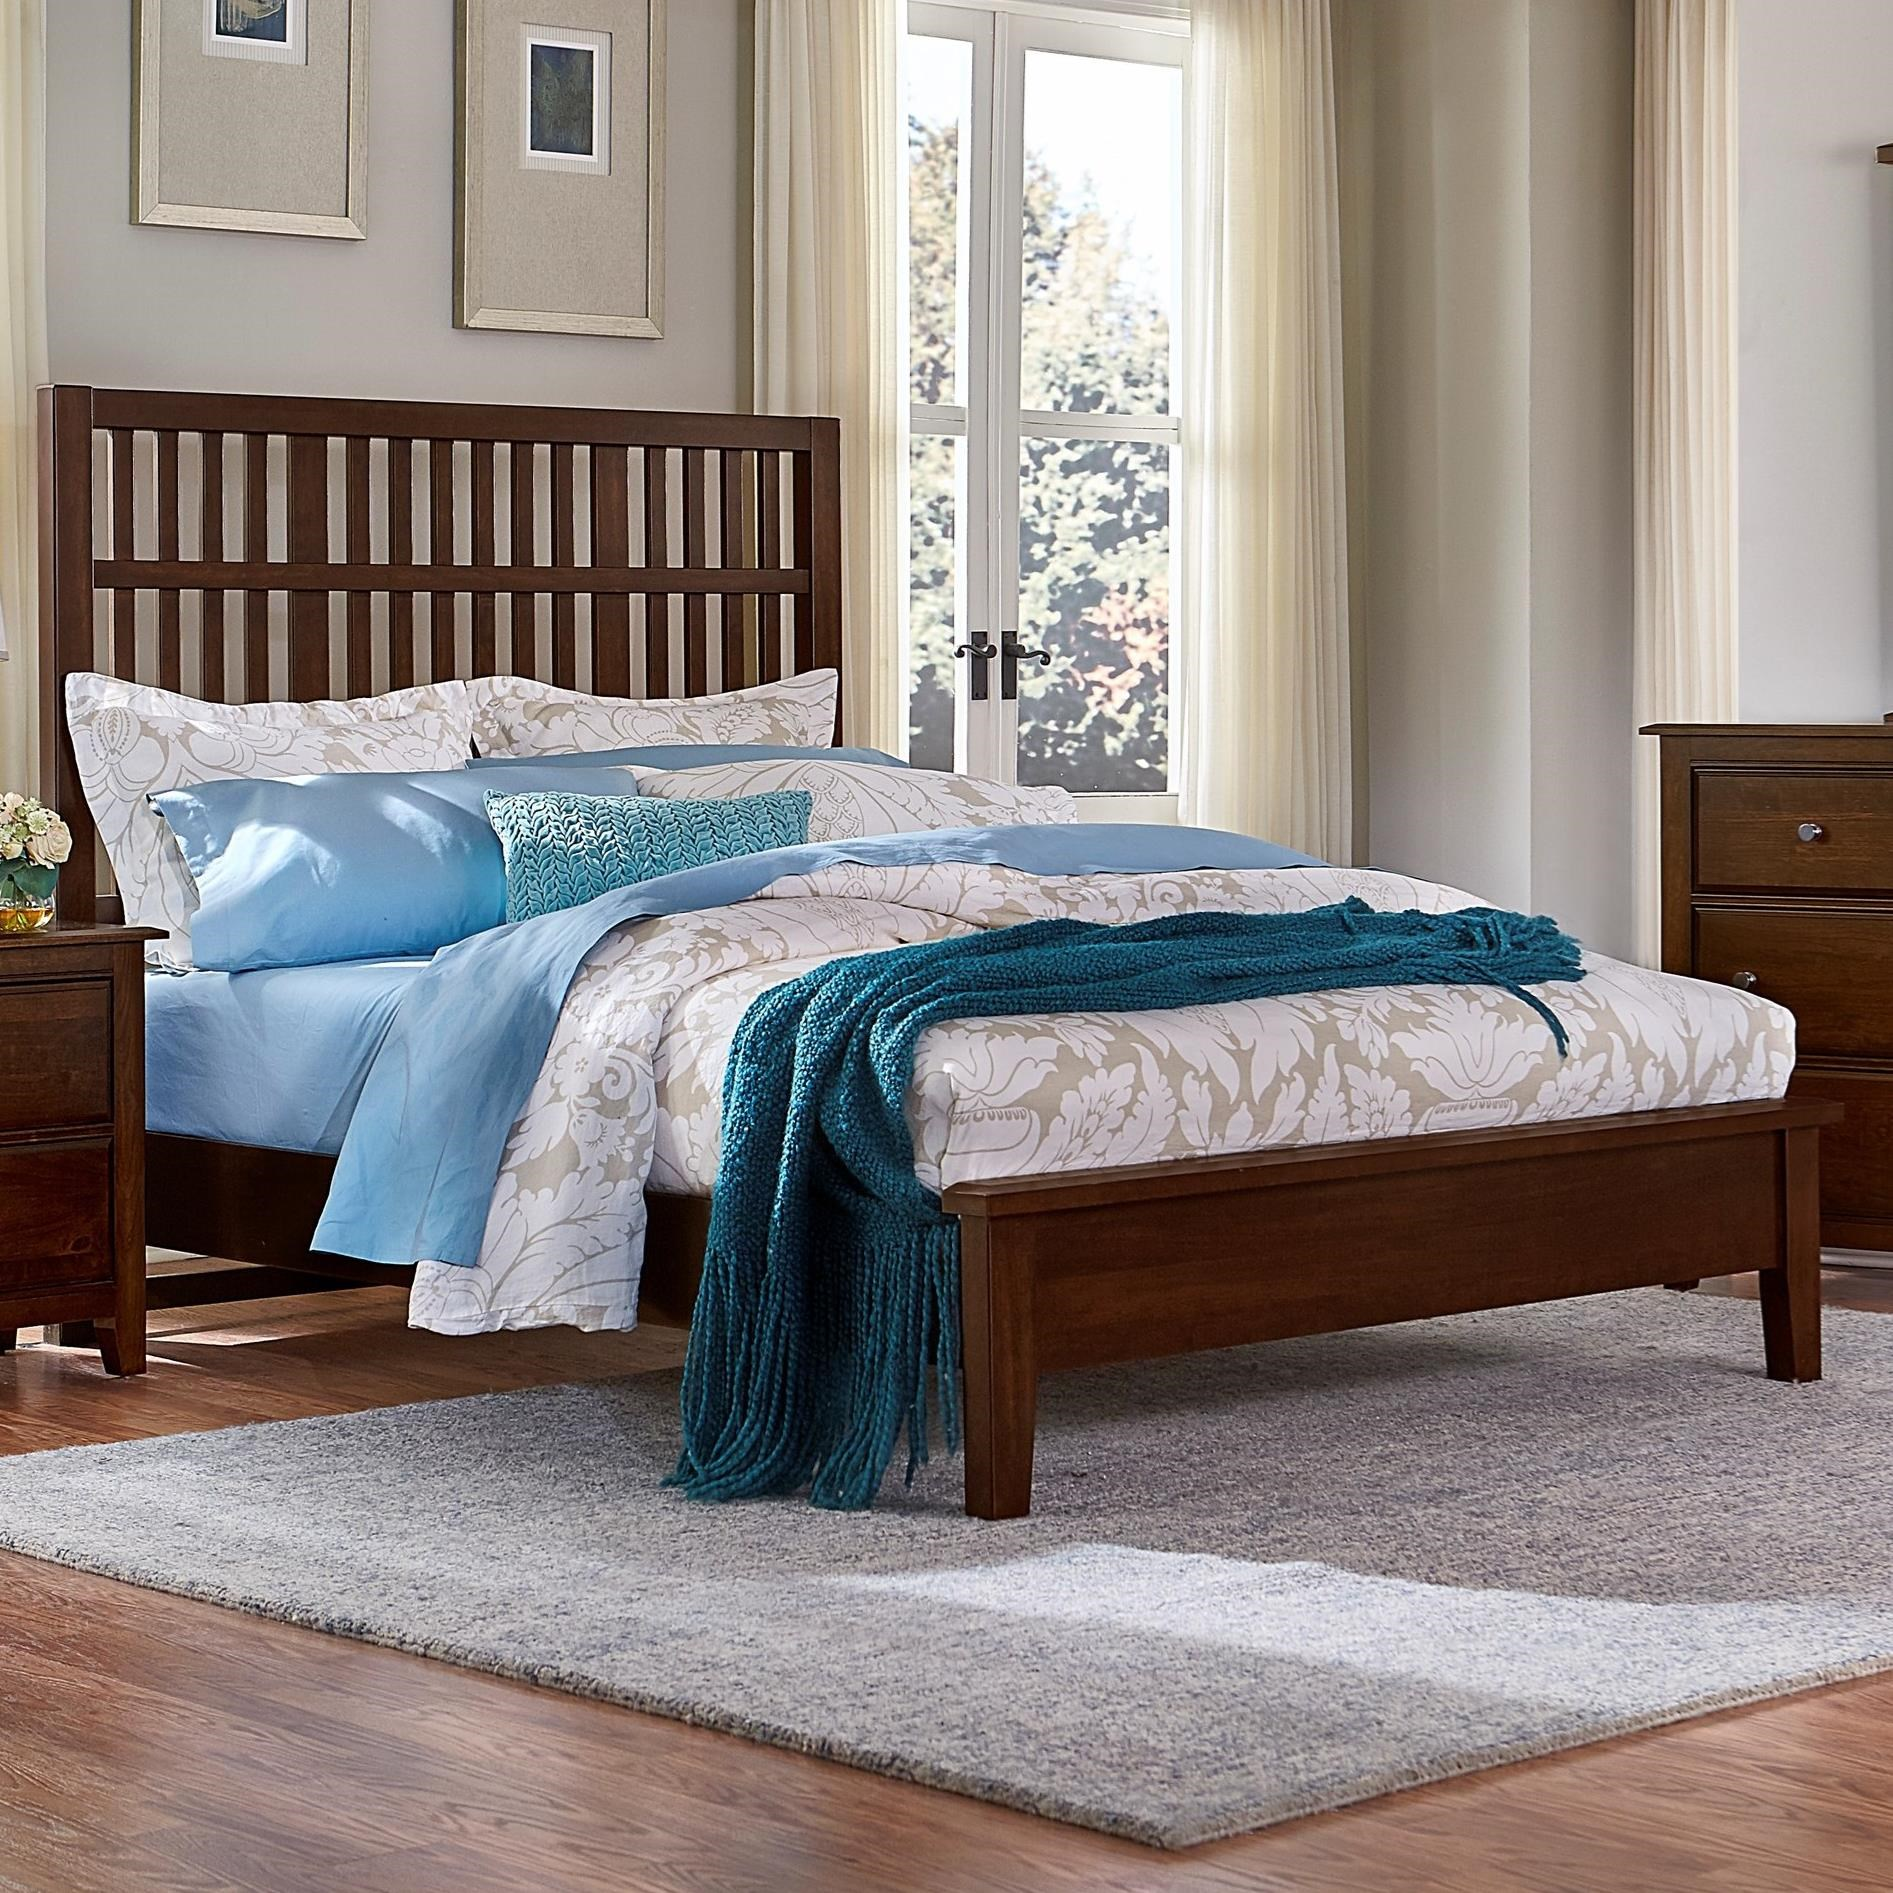 Artisan Choices Queen Craftsman Slat Bed w/ Low Ftbd by Artisan & Post at Rooms and Rest